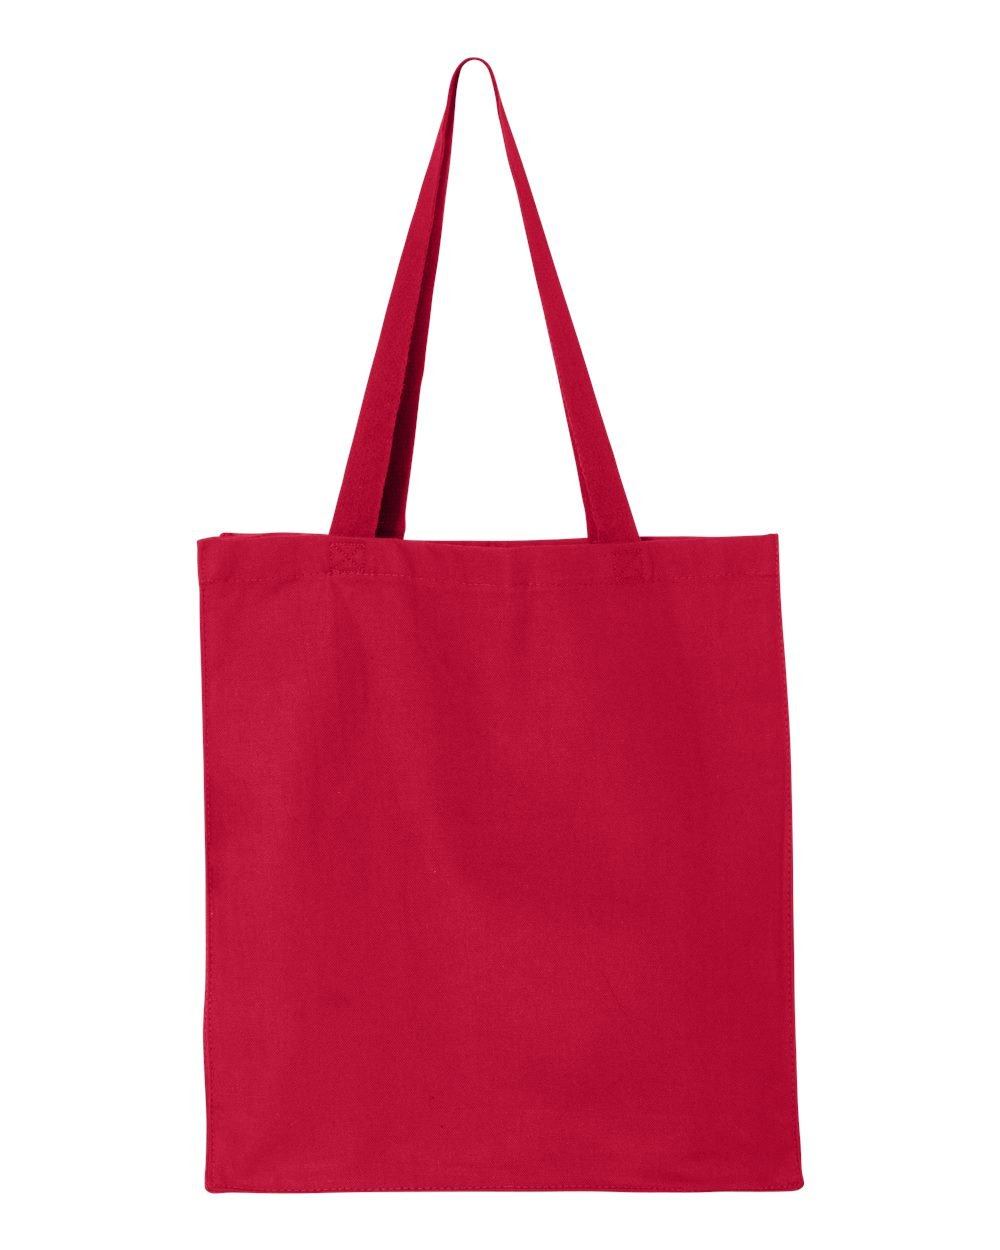 Qtees Womens 20 Web Canvas Handles Gusset Shopper, Red, One Size